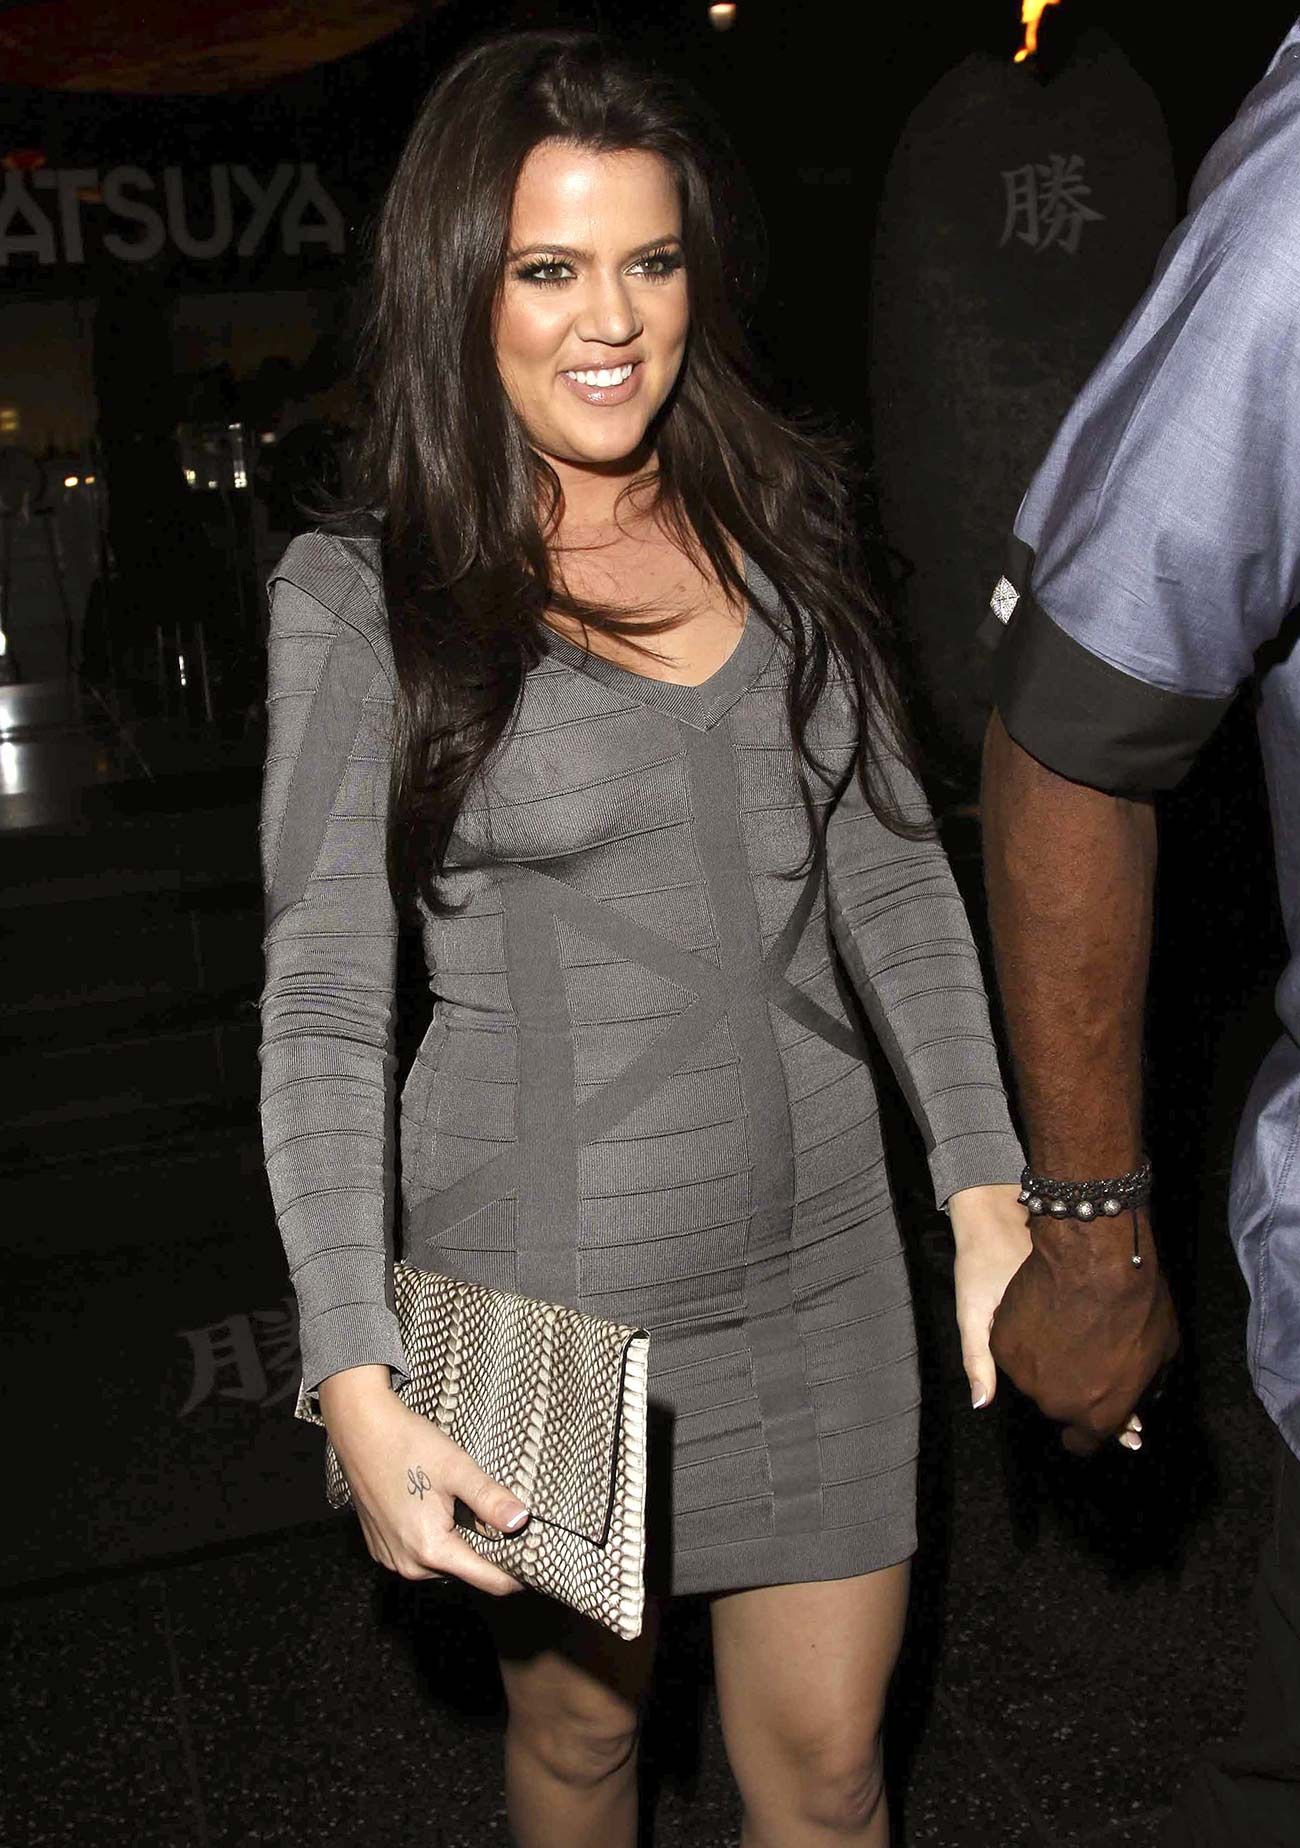 Khloe was mocked for this bodycon dress